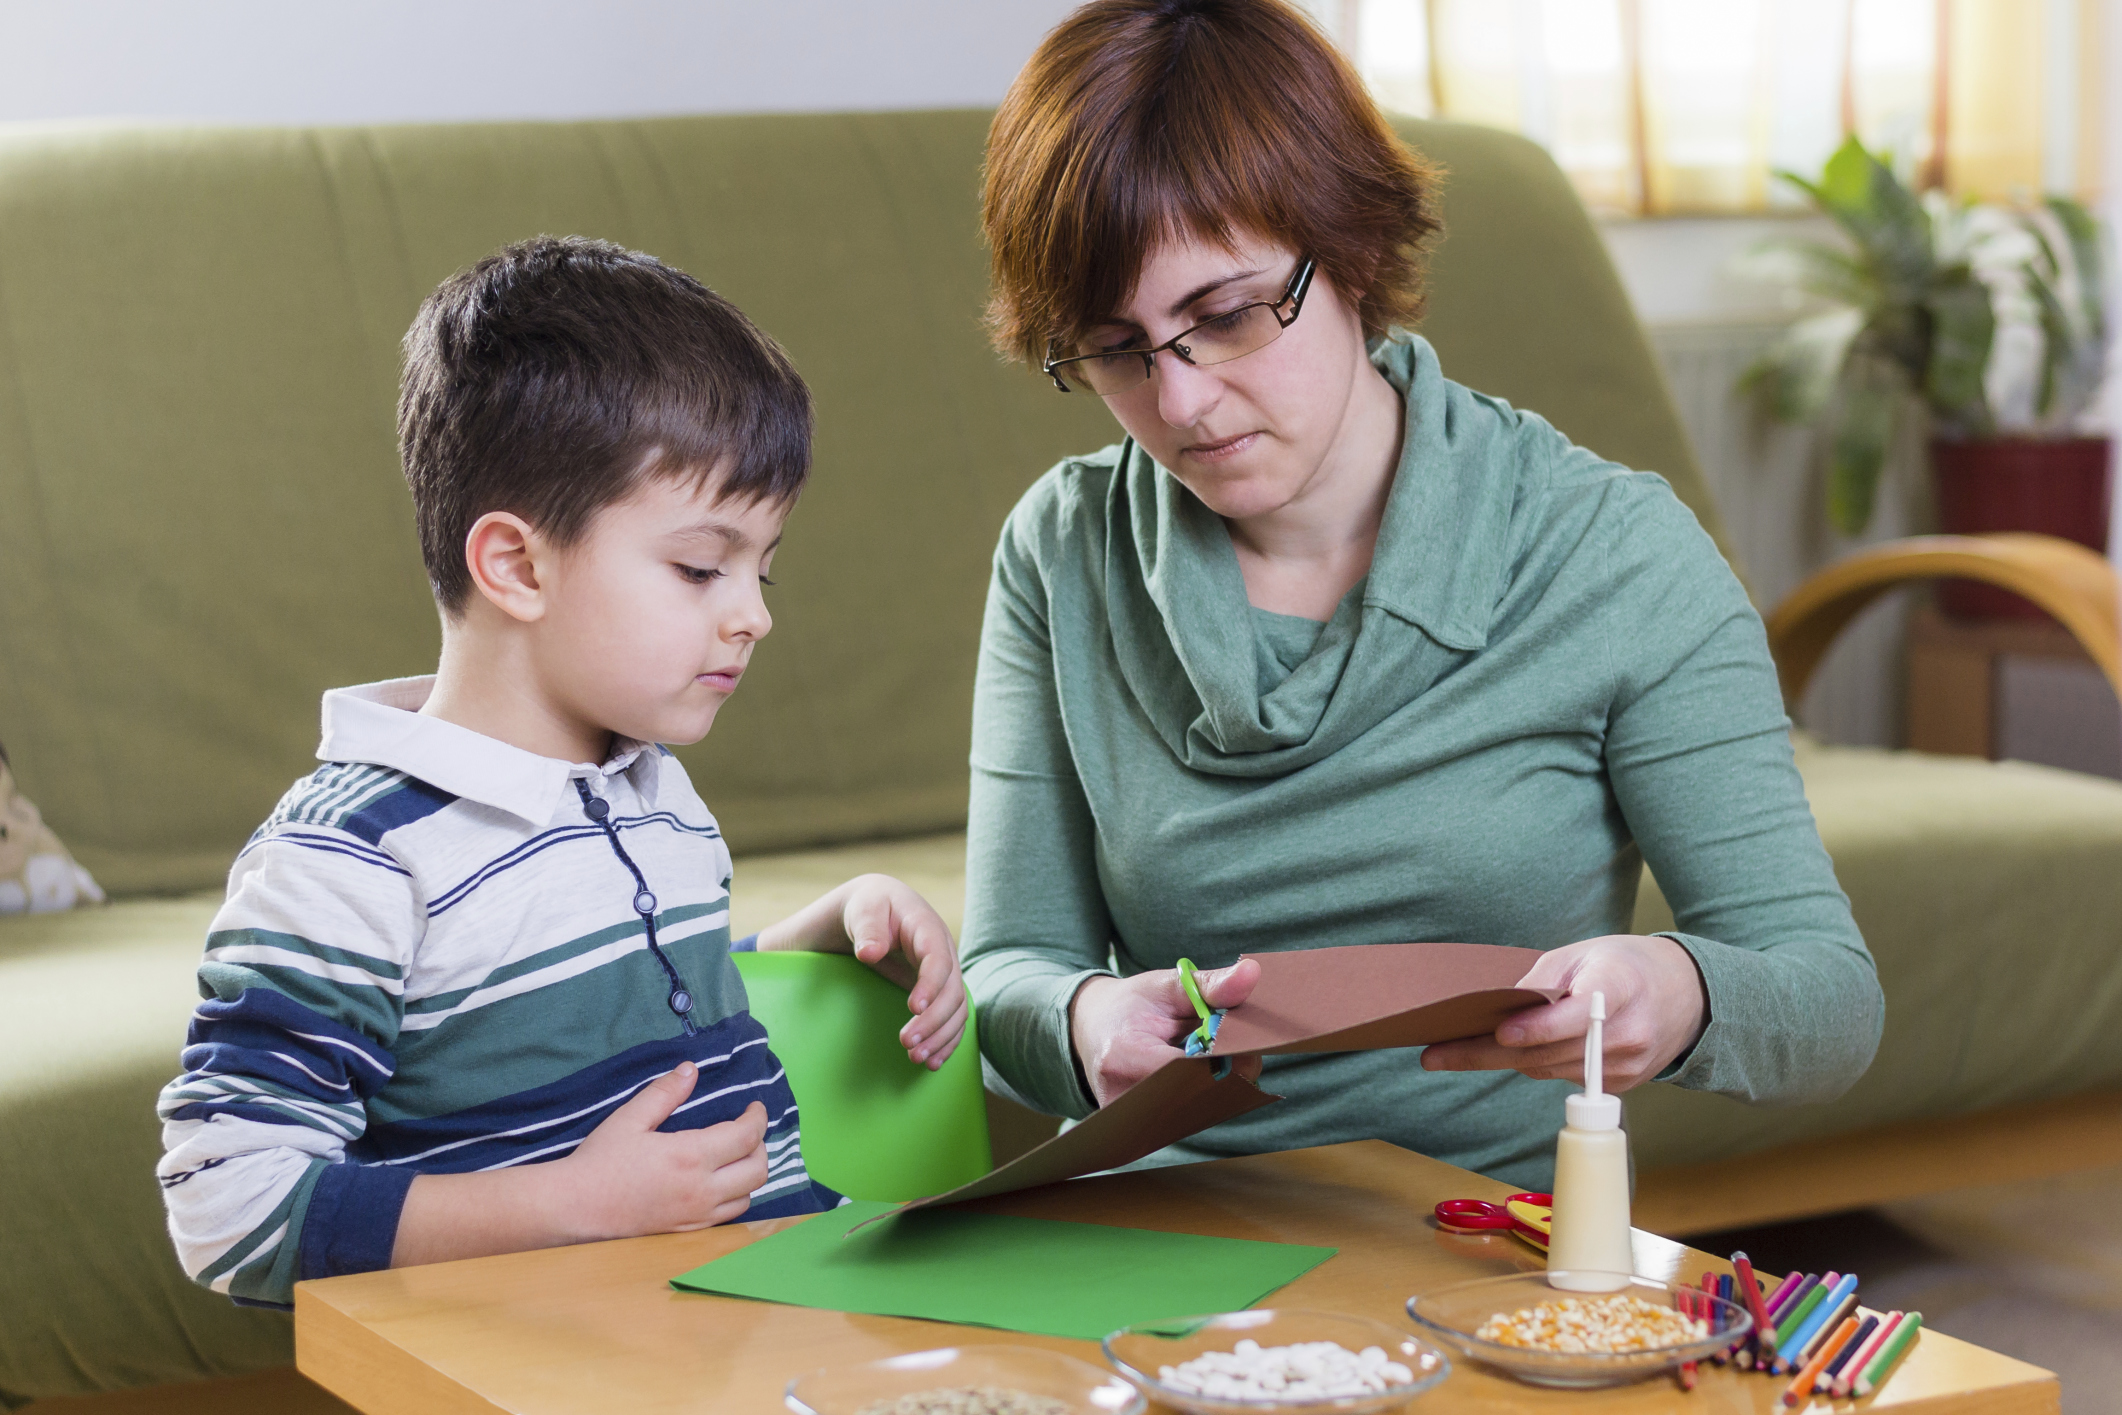 Mother and son crafting